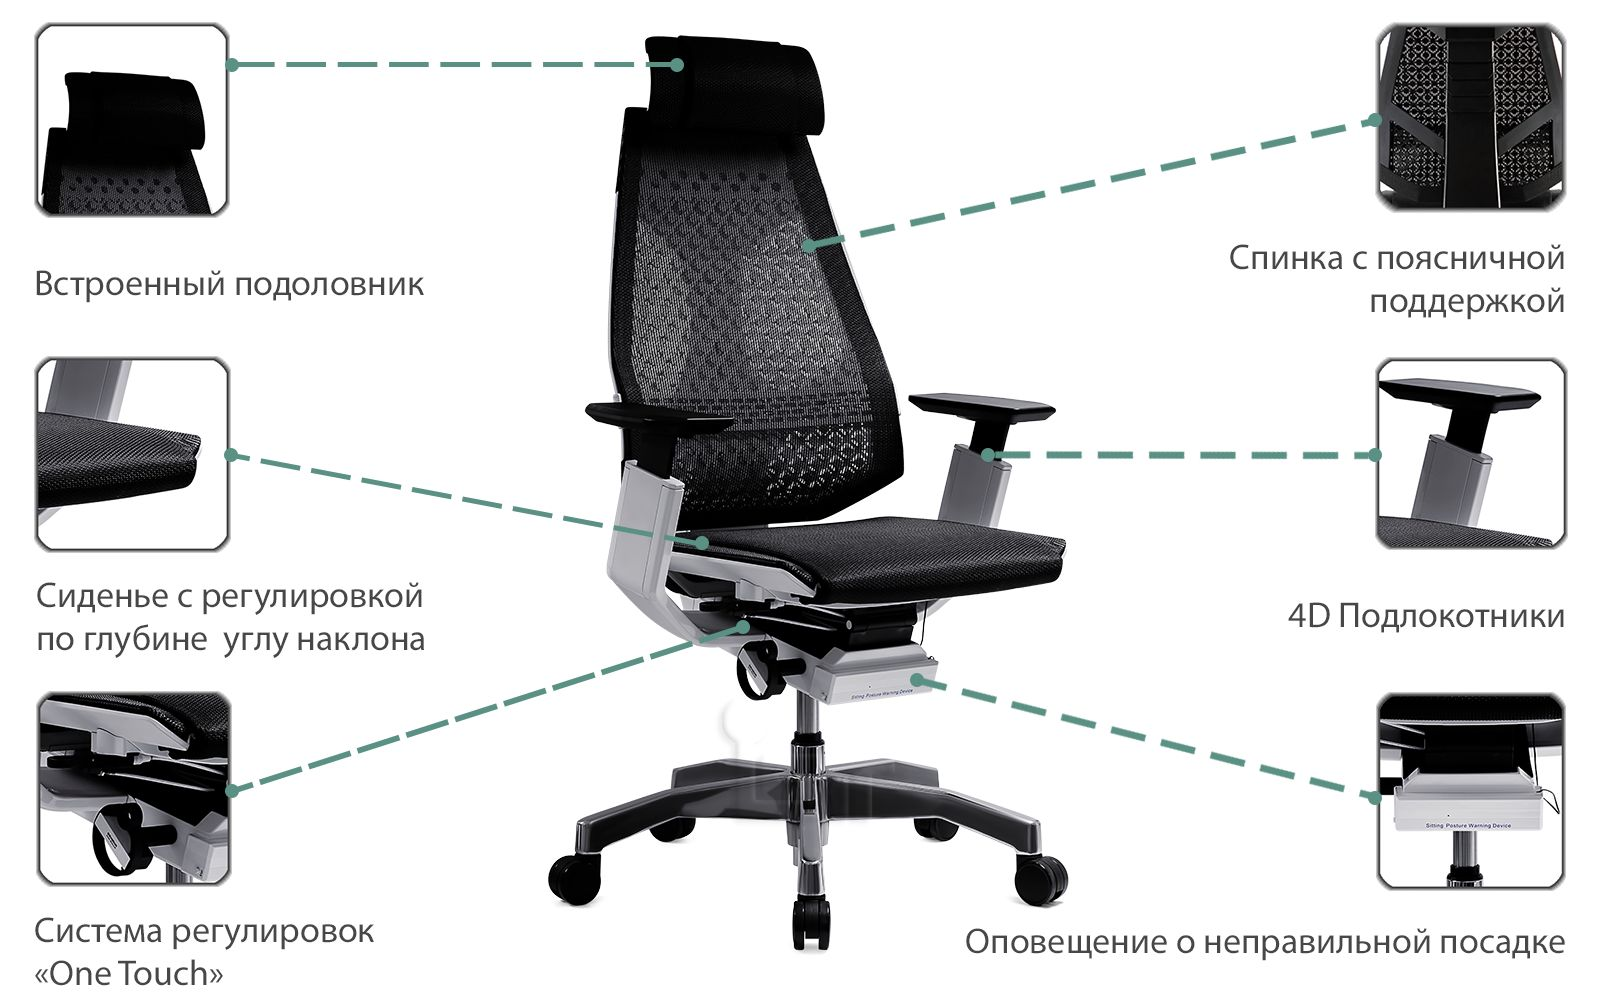 Инфографика кресло Geniaia от Comfort Seating (Workspace)